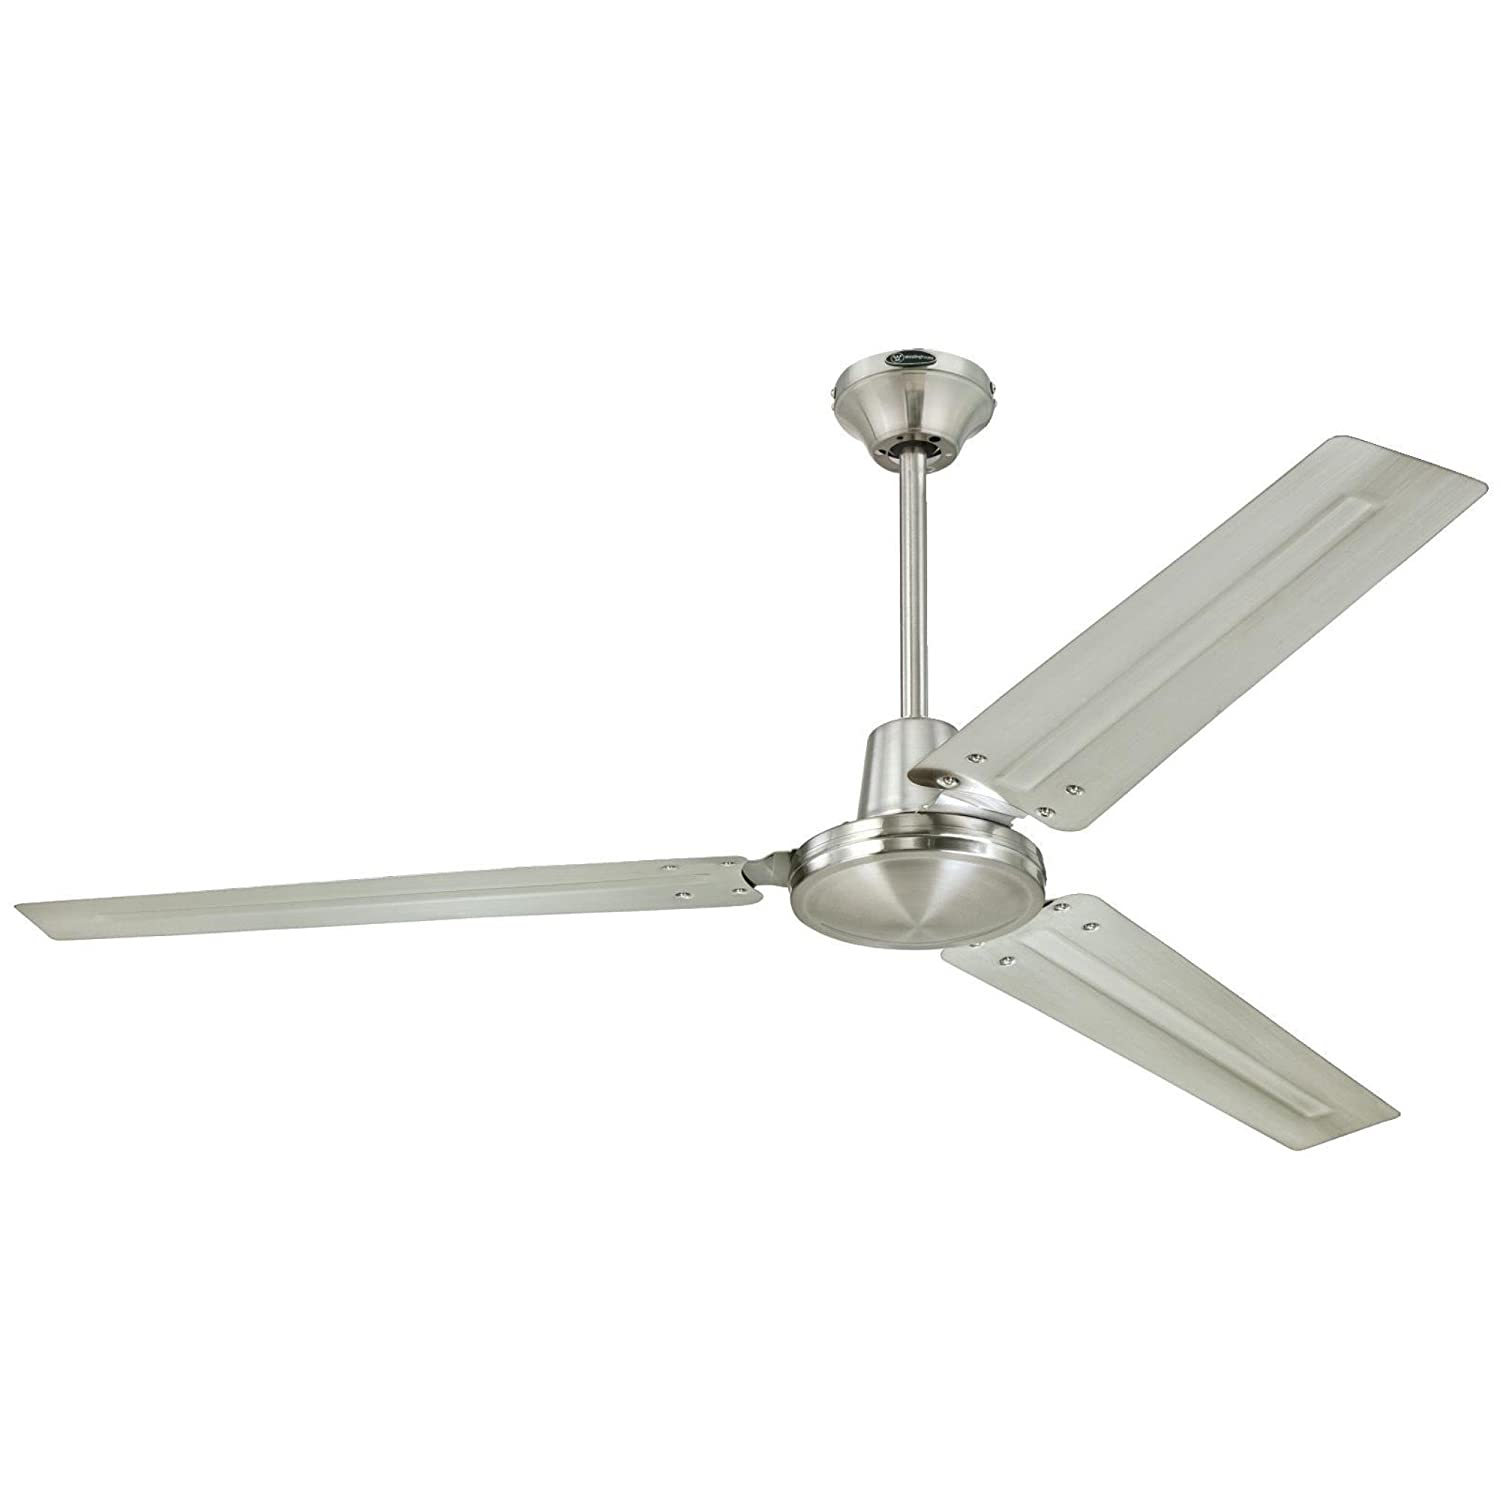 sienna fast northern fan stain certified dp traditional tea in ceiling refurbished with light blade a kit amazon com hunter